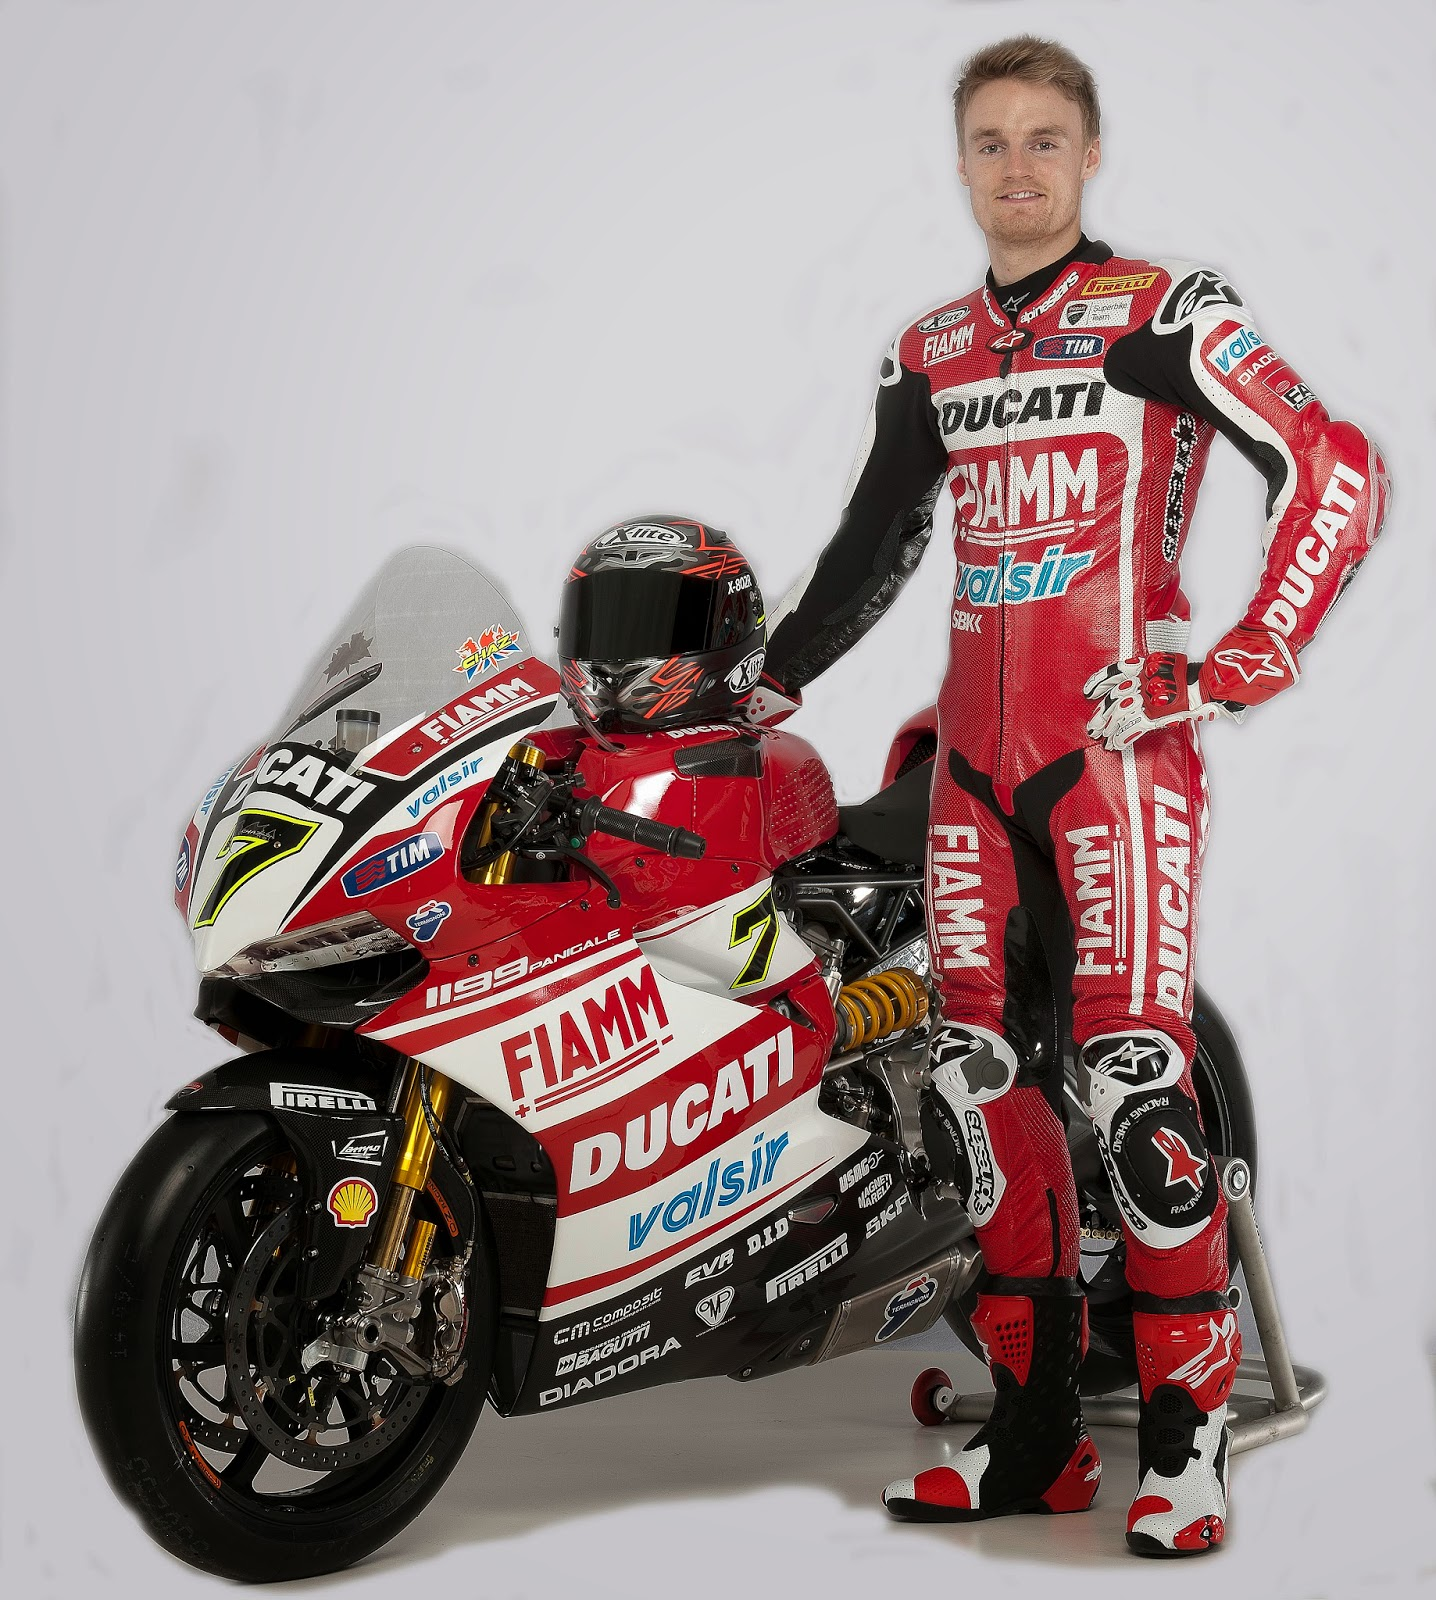 Racing Caf 232 Ducati 1199 Panigale Ducati Superbike Team 2014